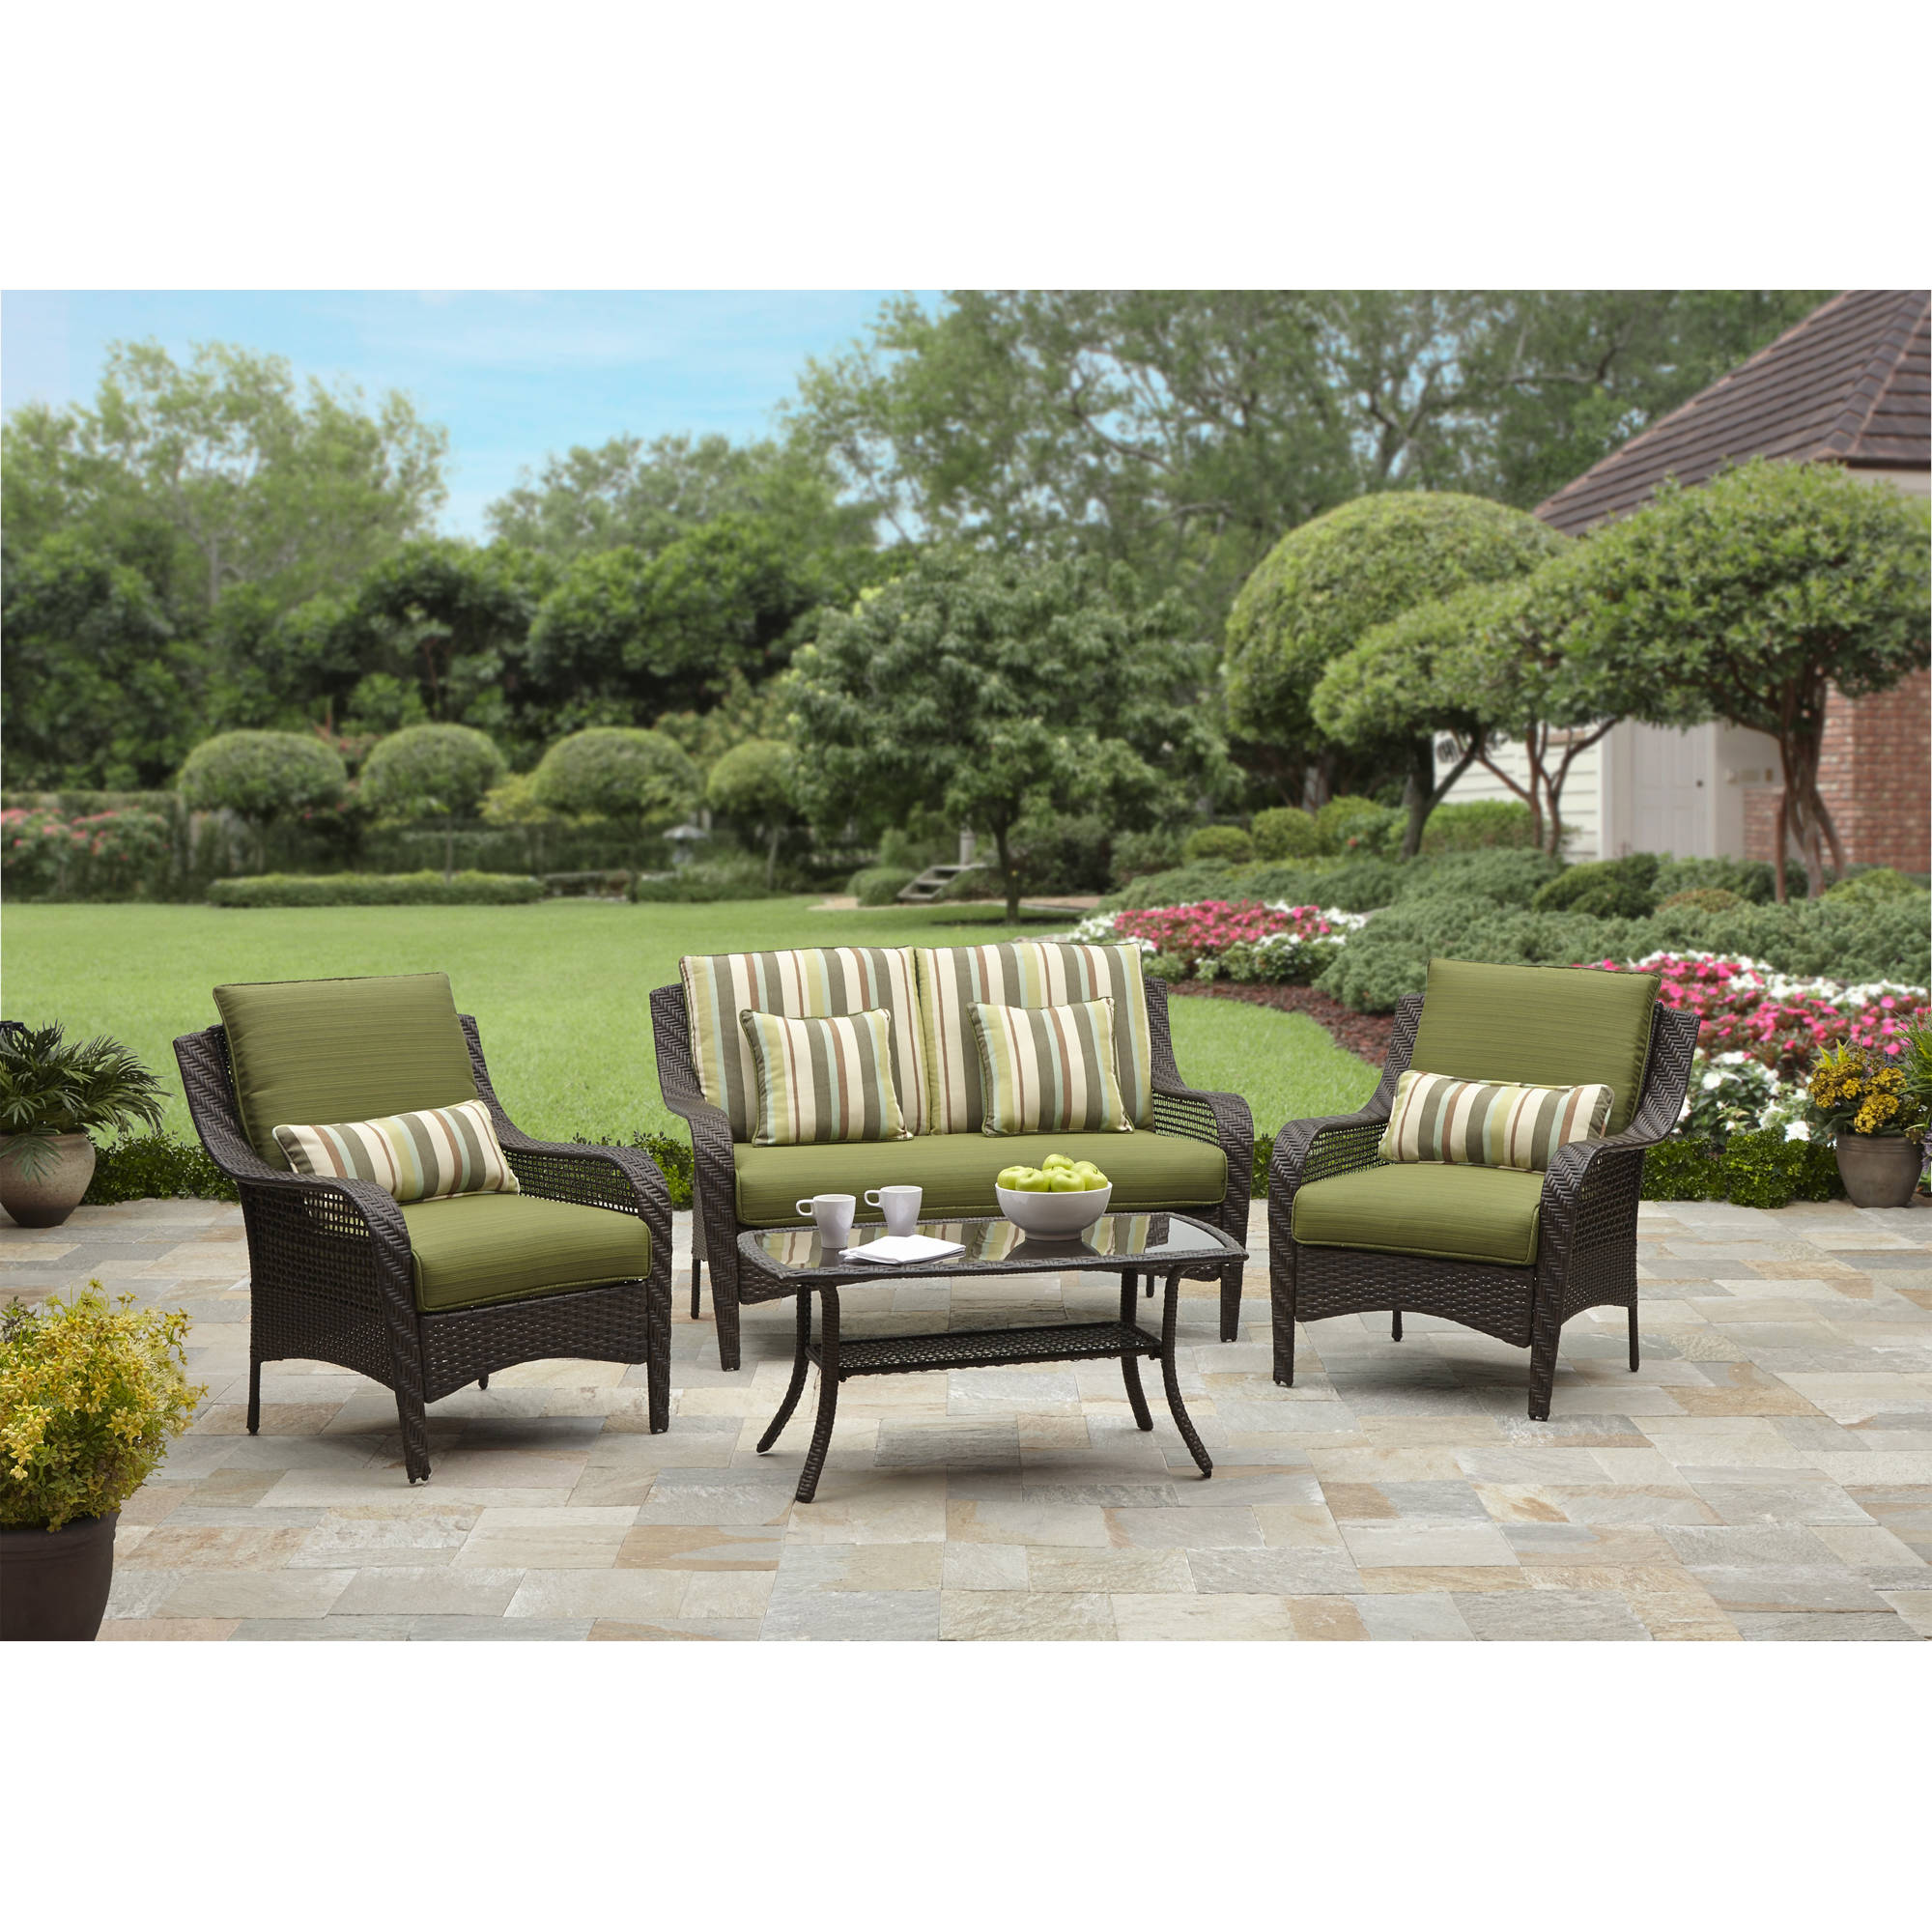 Better Homes And Gardens Amelia Cove 4 Piece Woven Patio Conversation Set